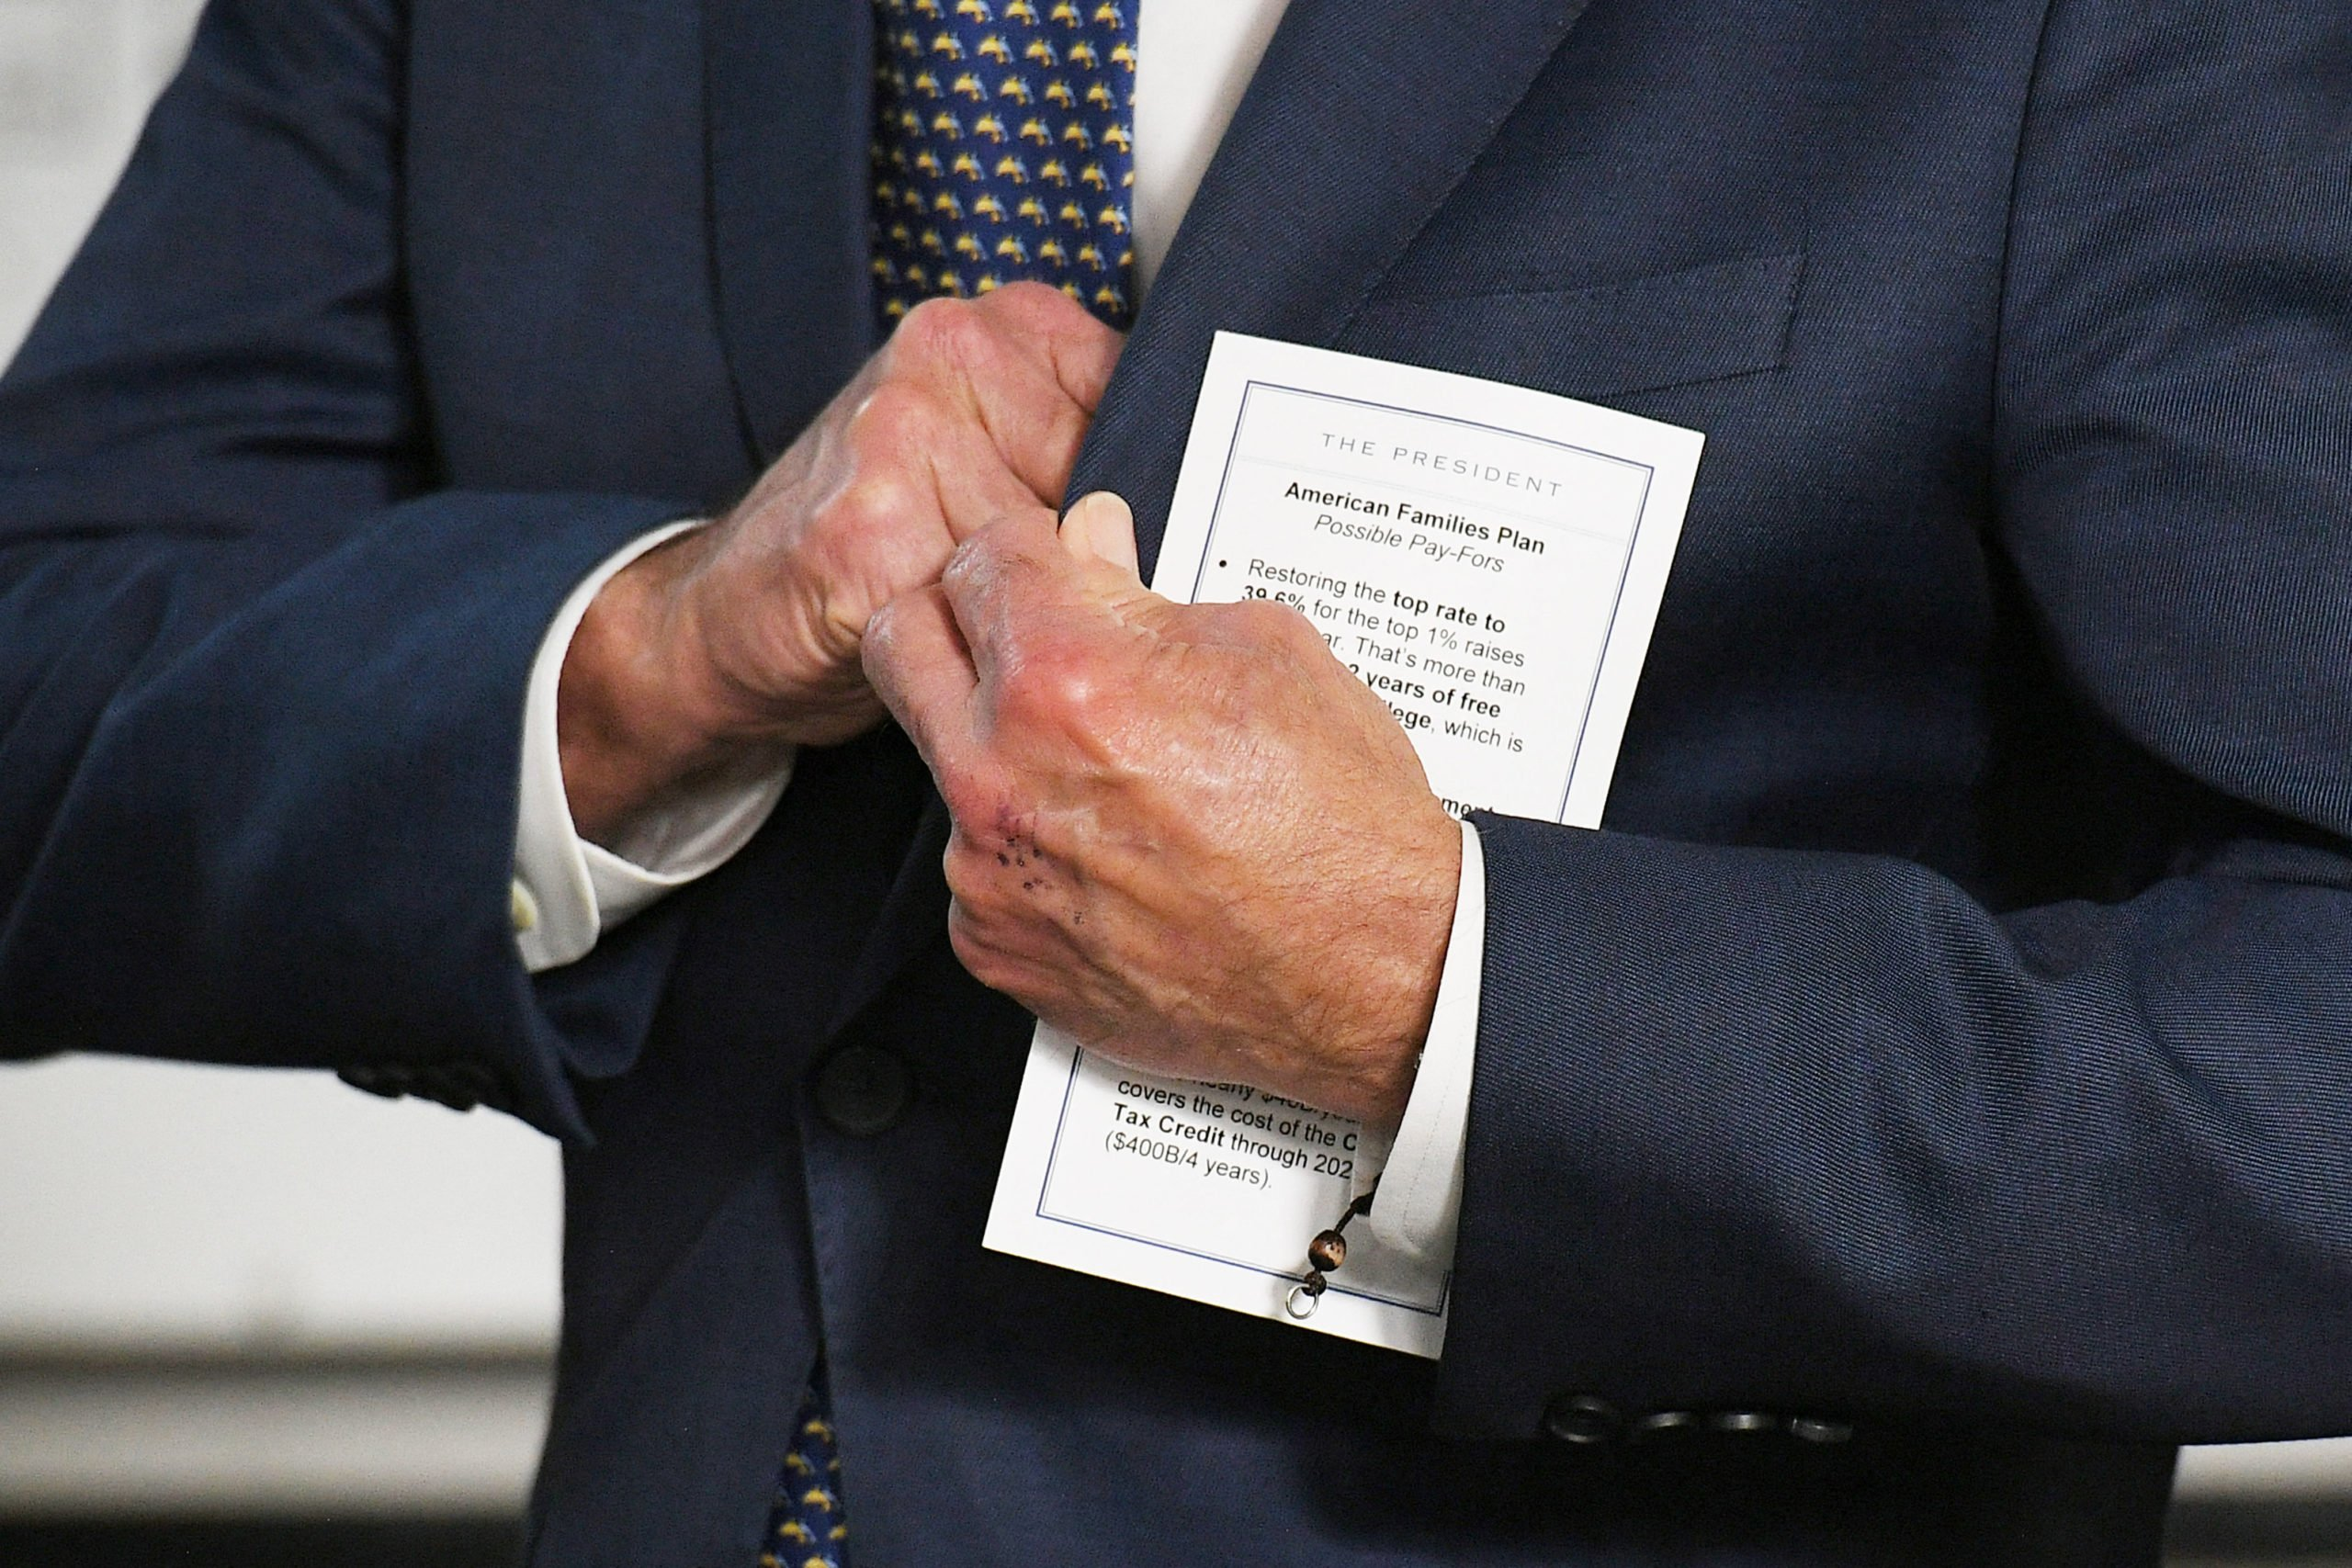 President Joe Biden holds a note card while being introduced before speaking on the American Jobs Plan on May 3. (Mandel Ngan/AFP via Getty Images)